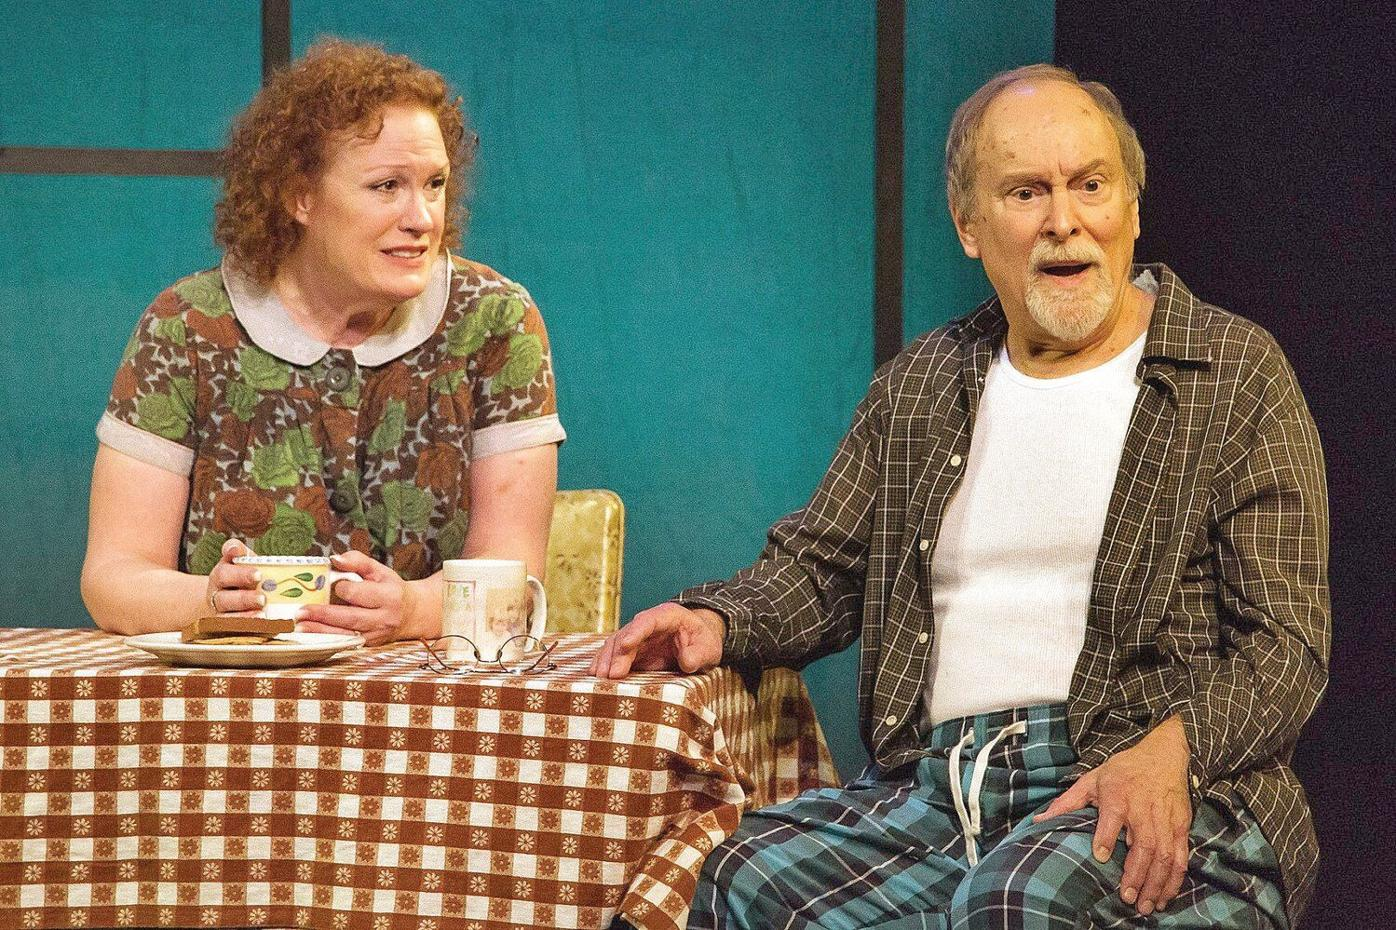 There's more than meets the eye when it comes to Barrington Stage Company's 10X10 New Play Festival